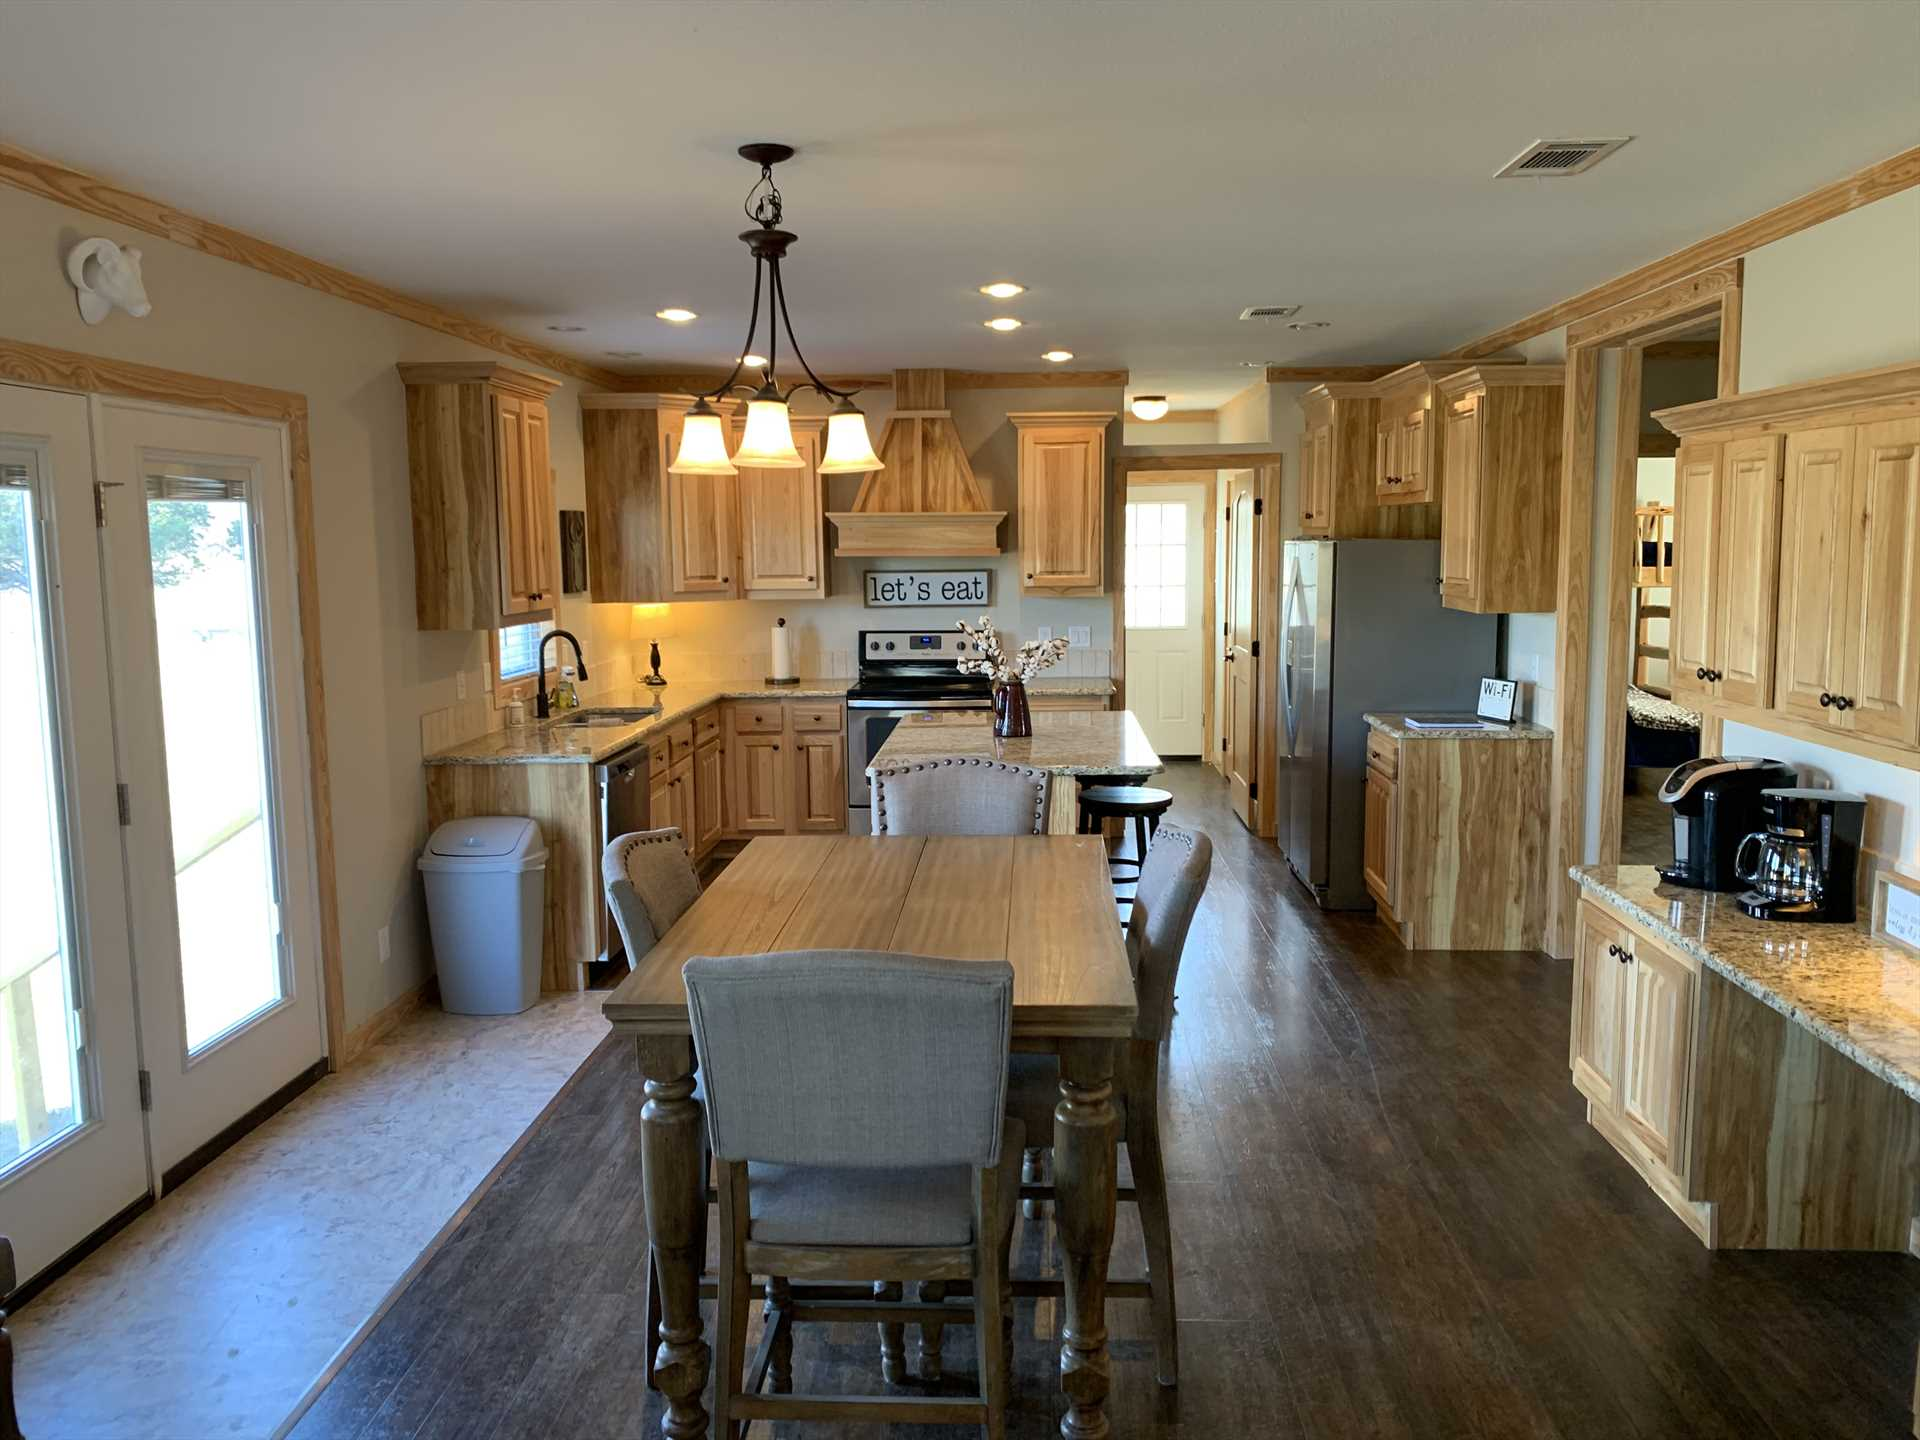 Marbleized counters and blond wood cabinets in the kitchen and dining area shine nicely in warm natural light during the day.